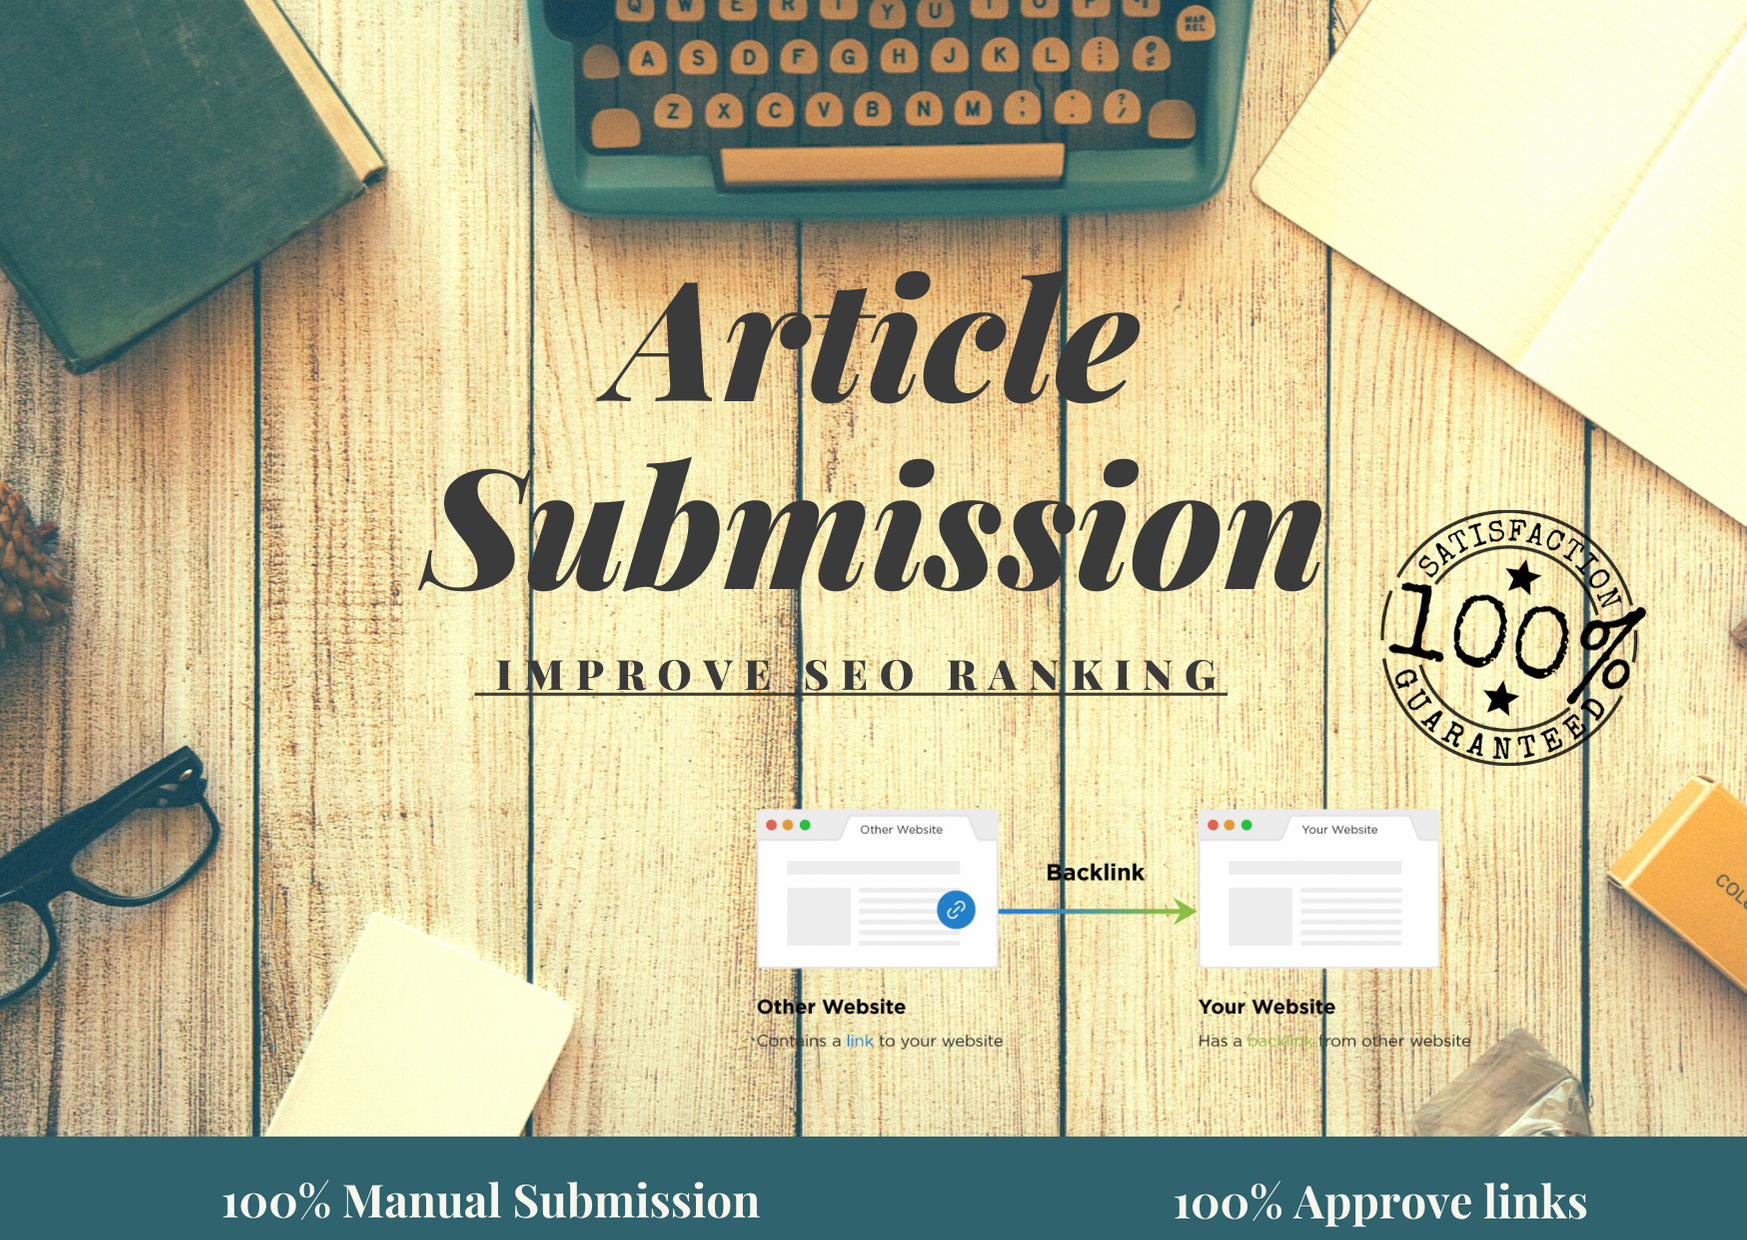 i will create 100 high quality article submission backlinks